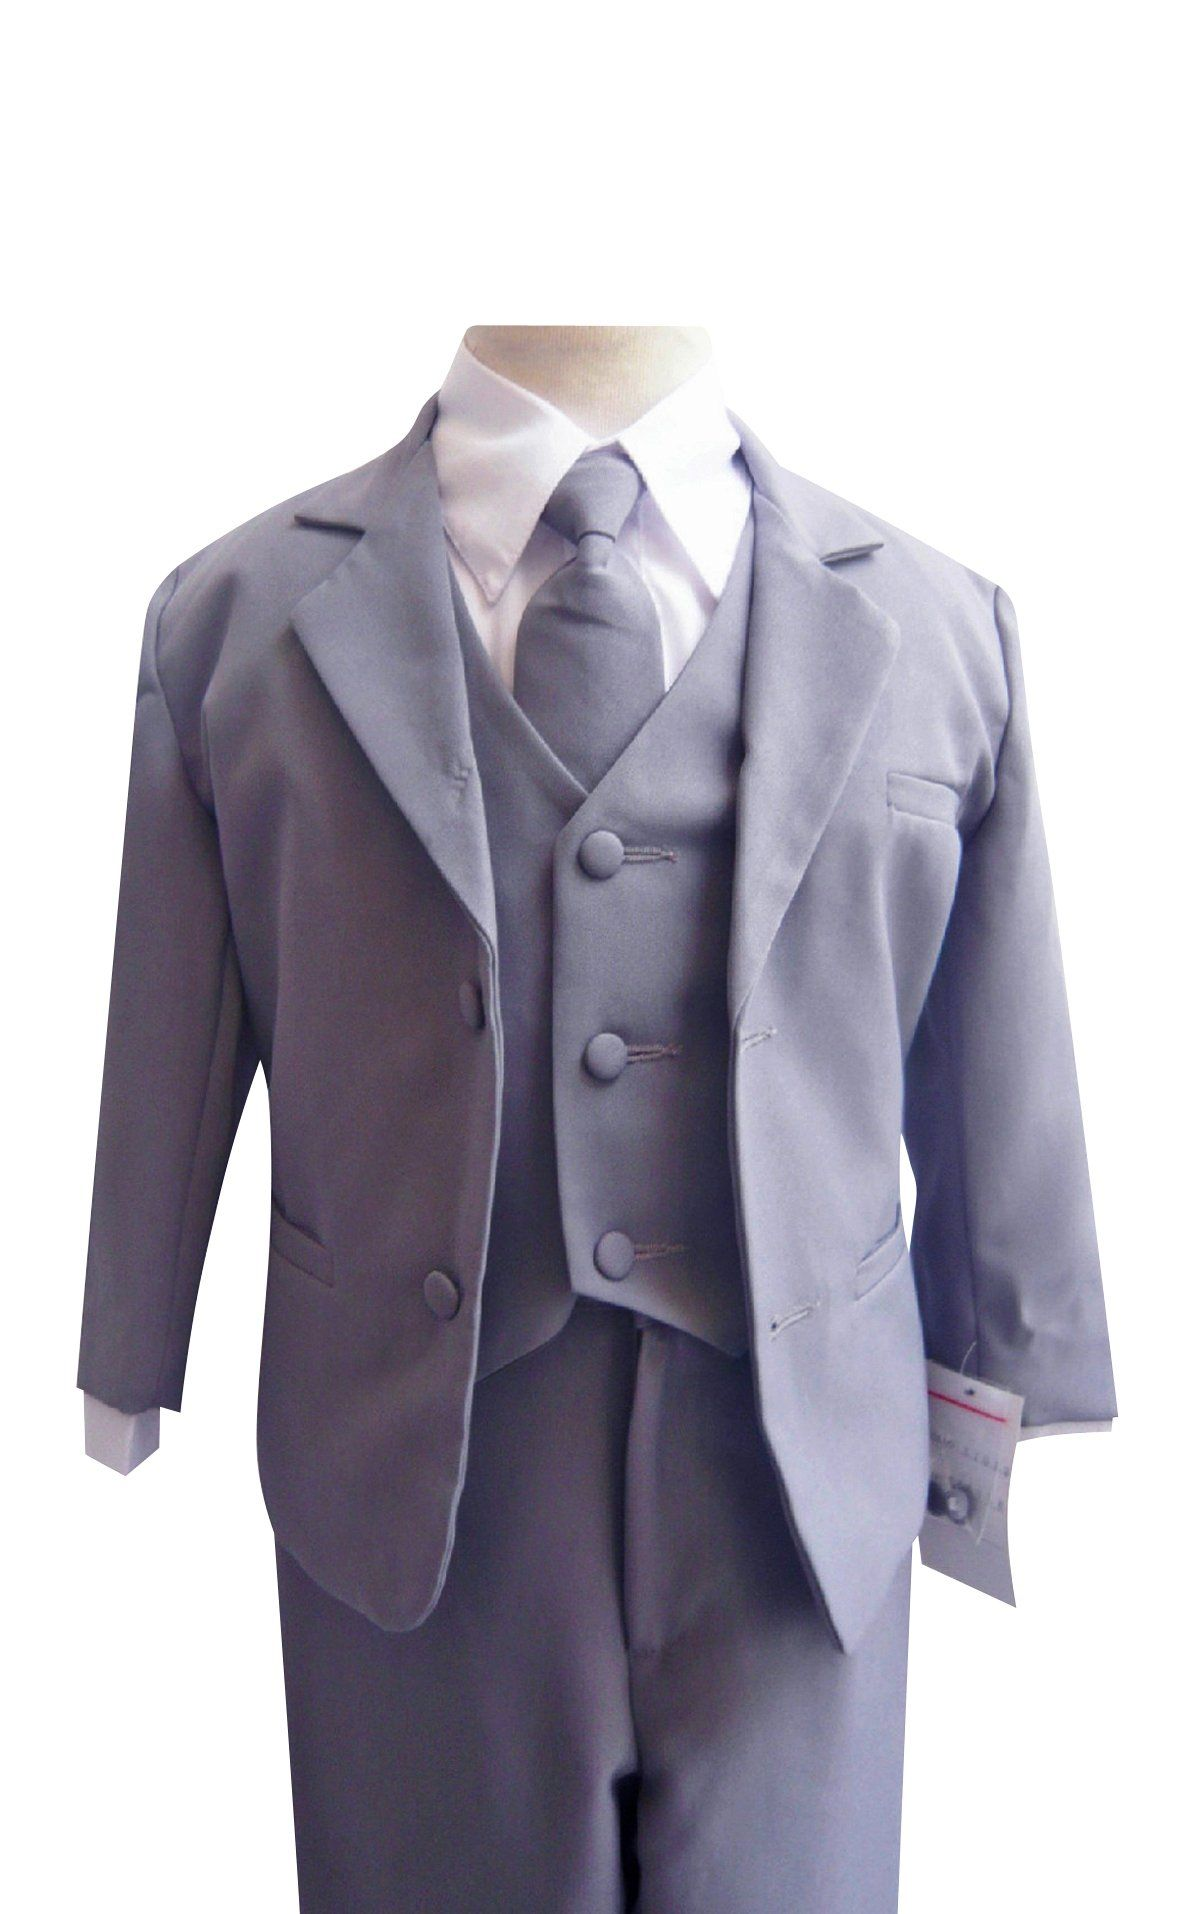 Classykidzshop Formal Suit Tuxedo Set